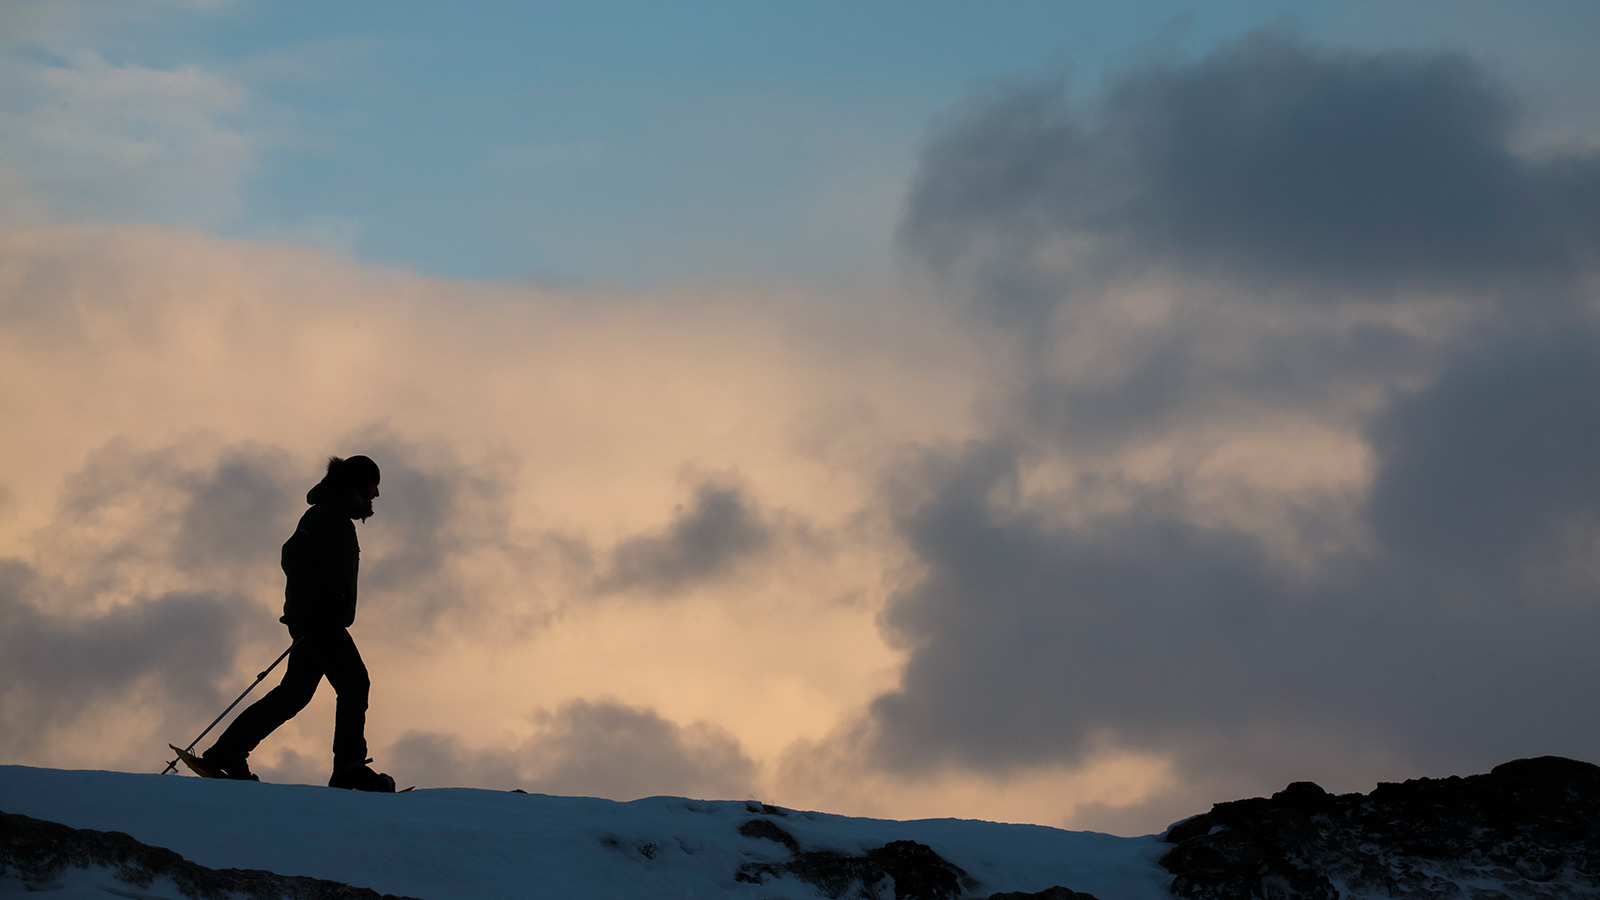 Snow Shoeing in Iceland